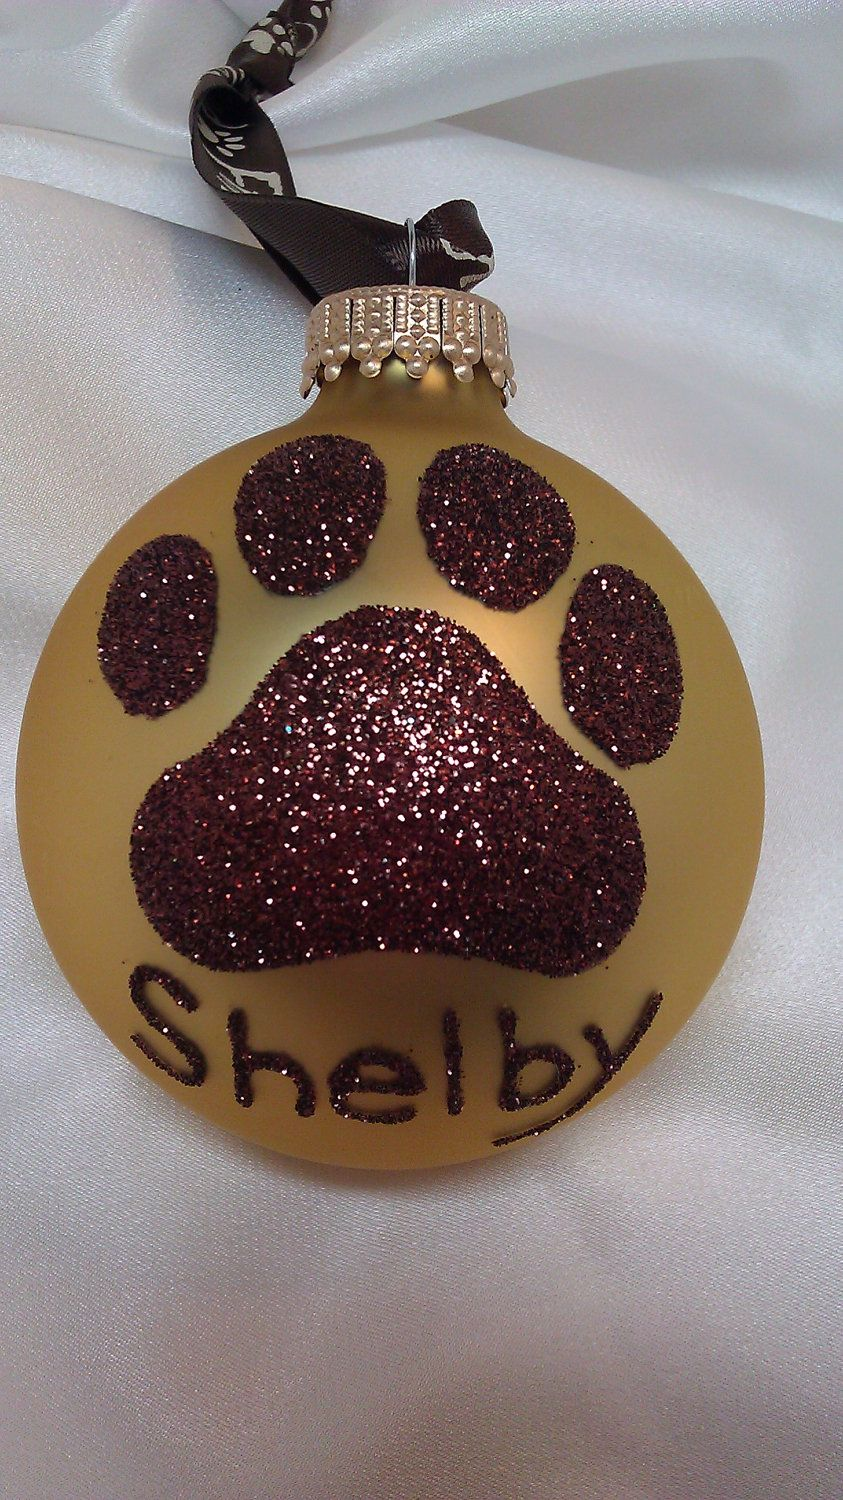 Personalized pet ornament - Dog Paw Print Glitter Christmas Ornament Your Choice Of Color Personalized Pet Doggie Glass Ball Chocolate Brown And Gold K9 Dog Lover